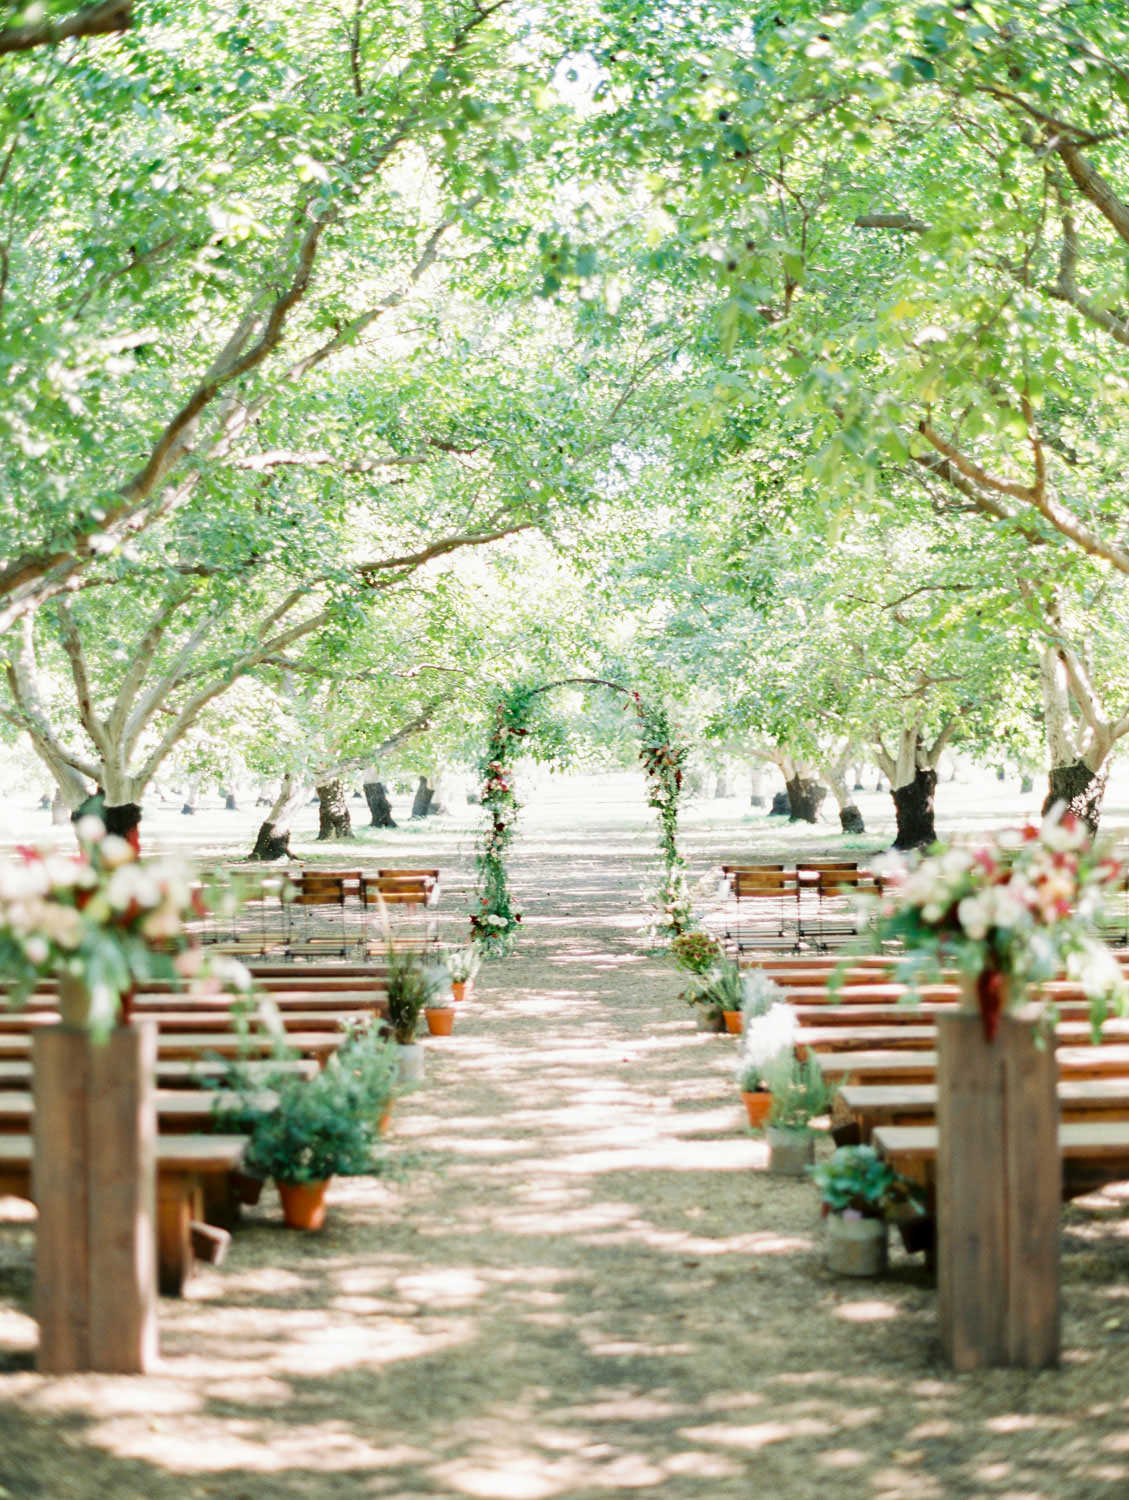 Ceremony in a forest with benches for seating and organic greenery and plants down the aisle. Full Belly Farm ceremony on Martha Stewart Weddings by film photographer Cavin Elizabeth Photography